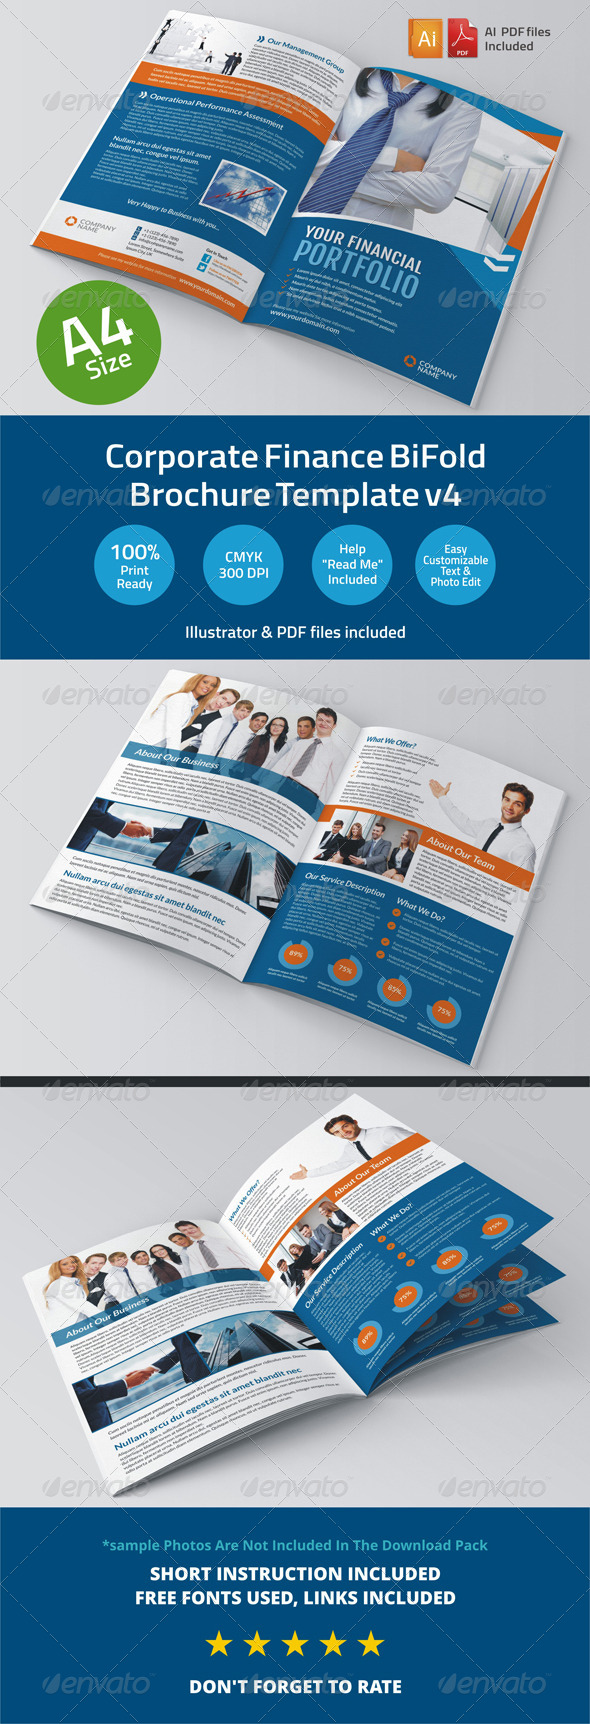 GraphicRiver Corporate Finance BiFold Brochure Template v4 6345768